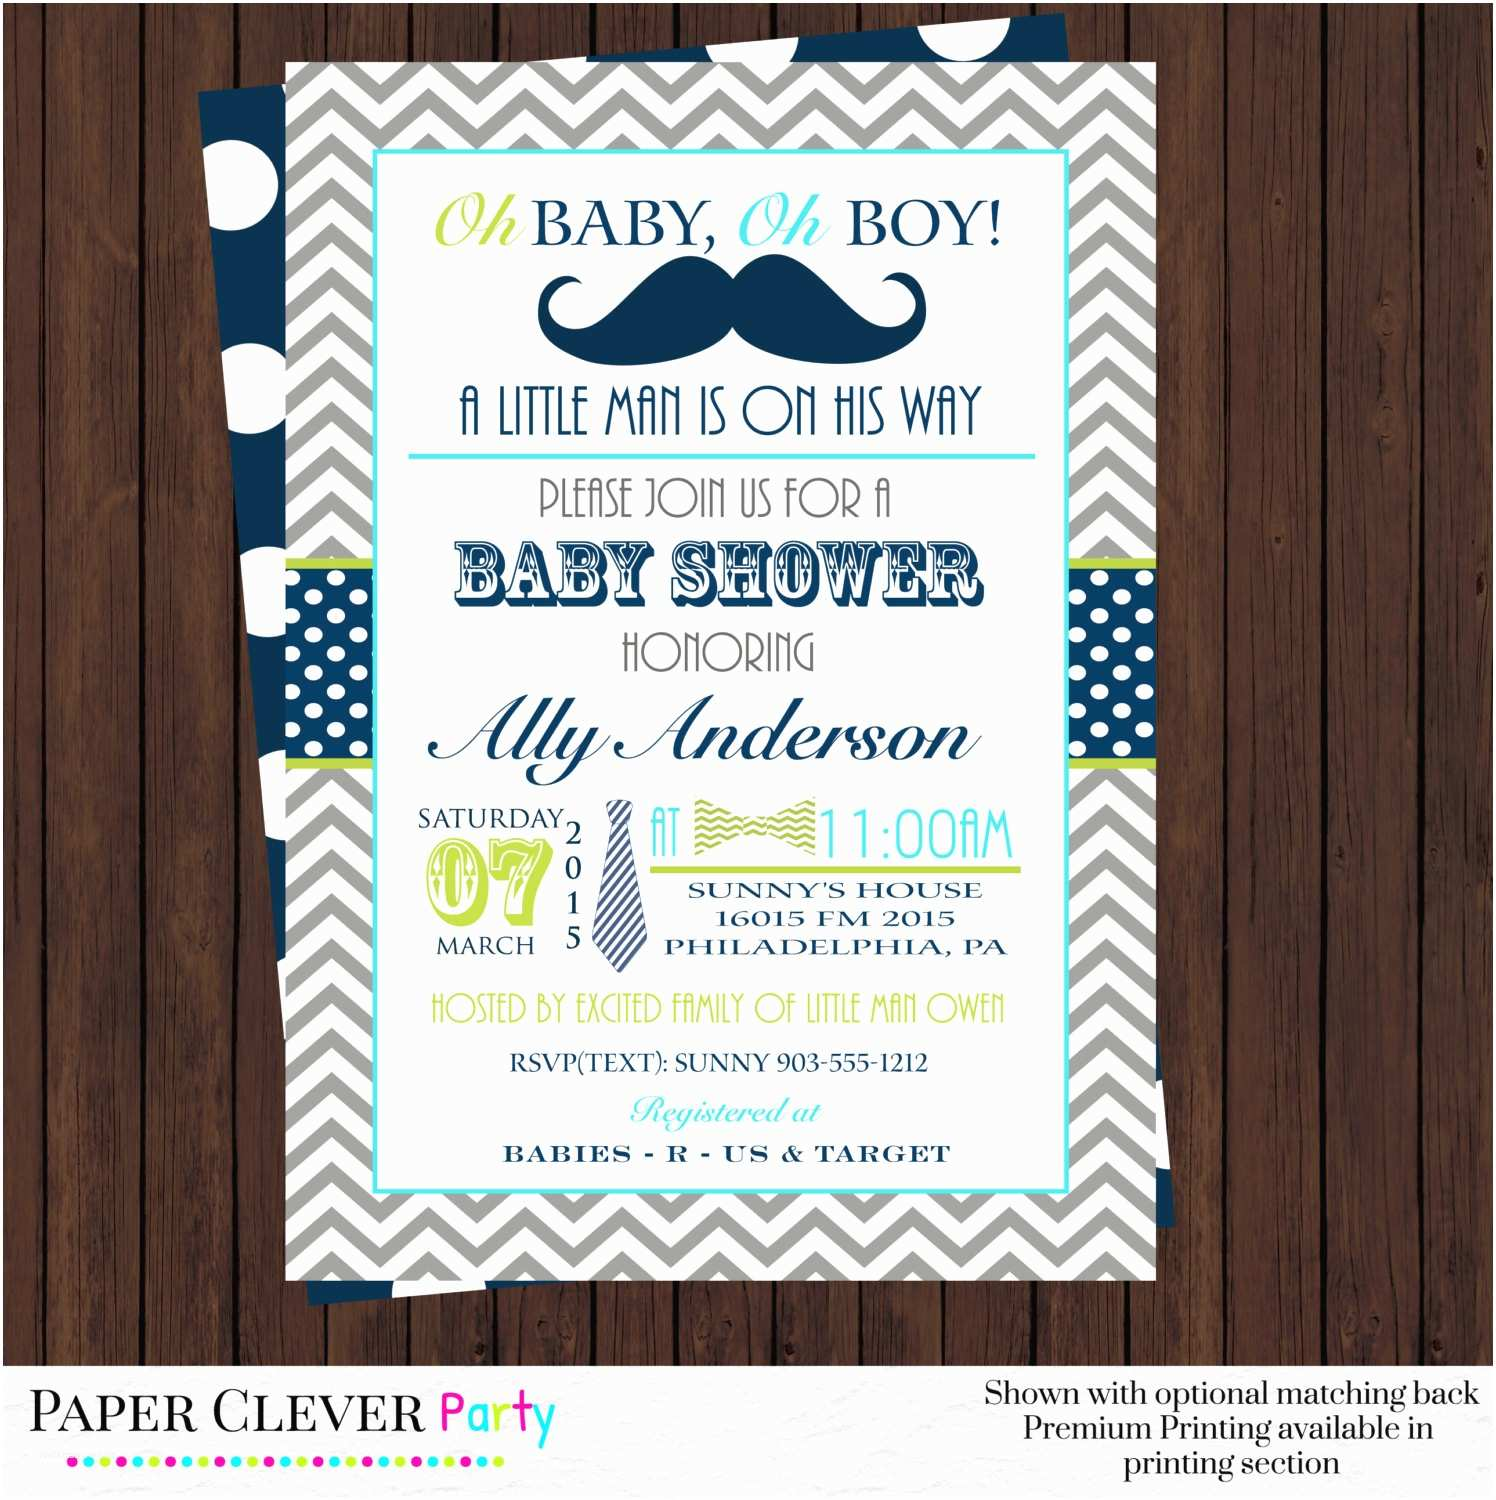 Mustache And Bow Tie Baby Shower Invitations Mustache Baby Shower Invitations Bow Tie By